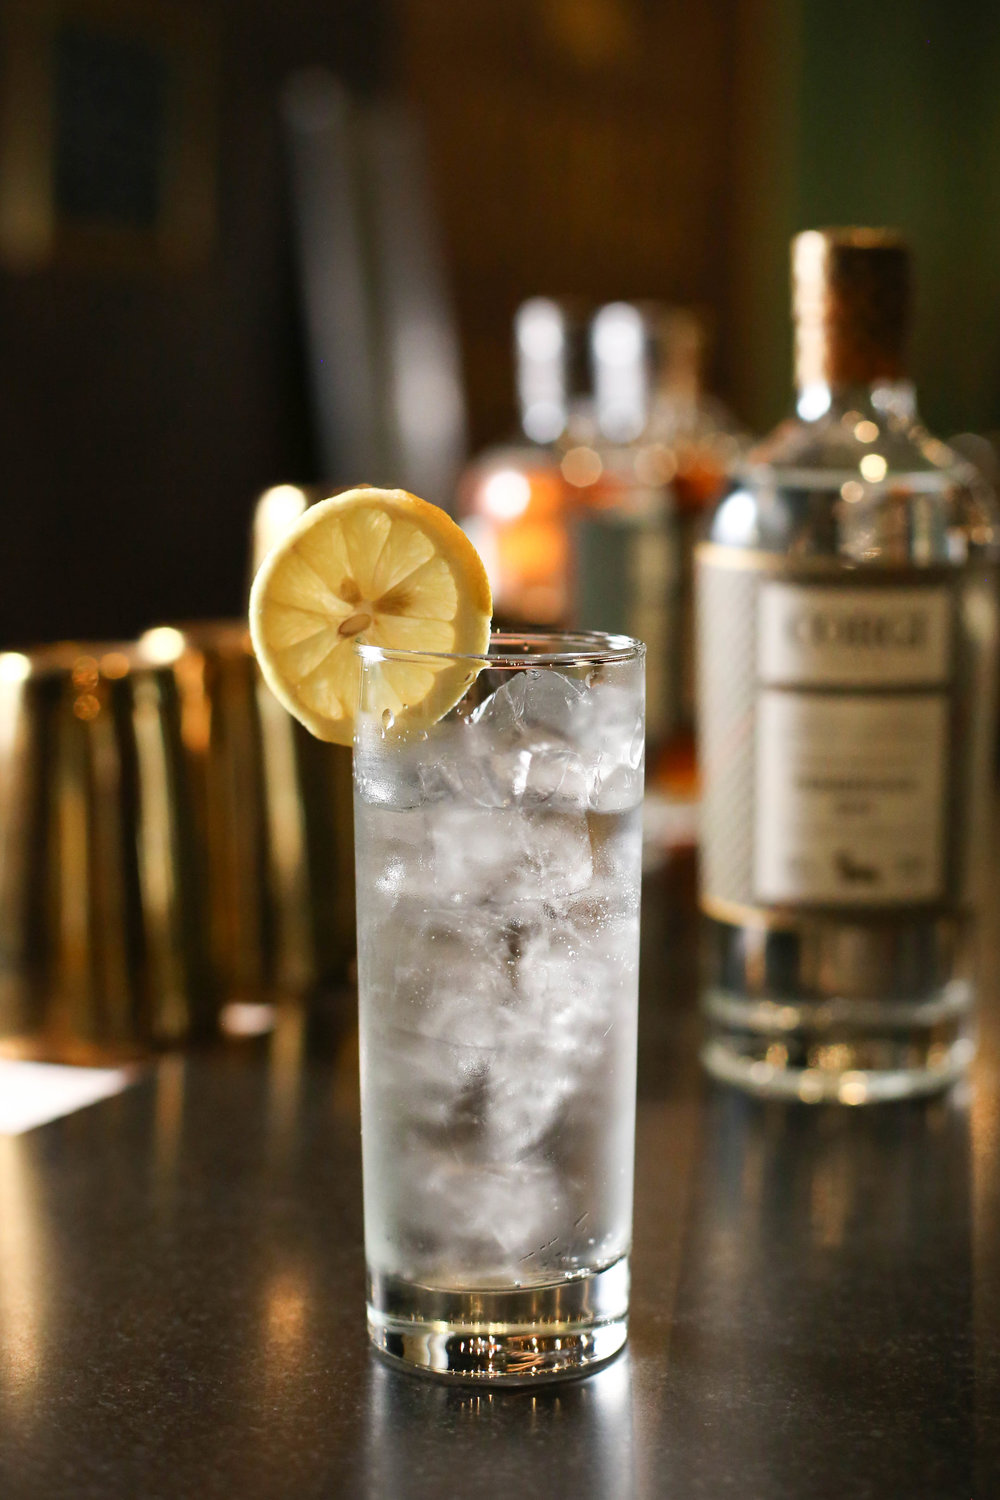 GIN & TONIC   2 oz Corgi Spirits Pembroke Gin  1 - 200mL bottle Fever Tree tonic water  Lemon for garnish    Fill a Collins glass with ice, add gin and stir to chill thoroughly. Pour tonic water into glass while gently stirring to combine. Add garnish.